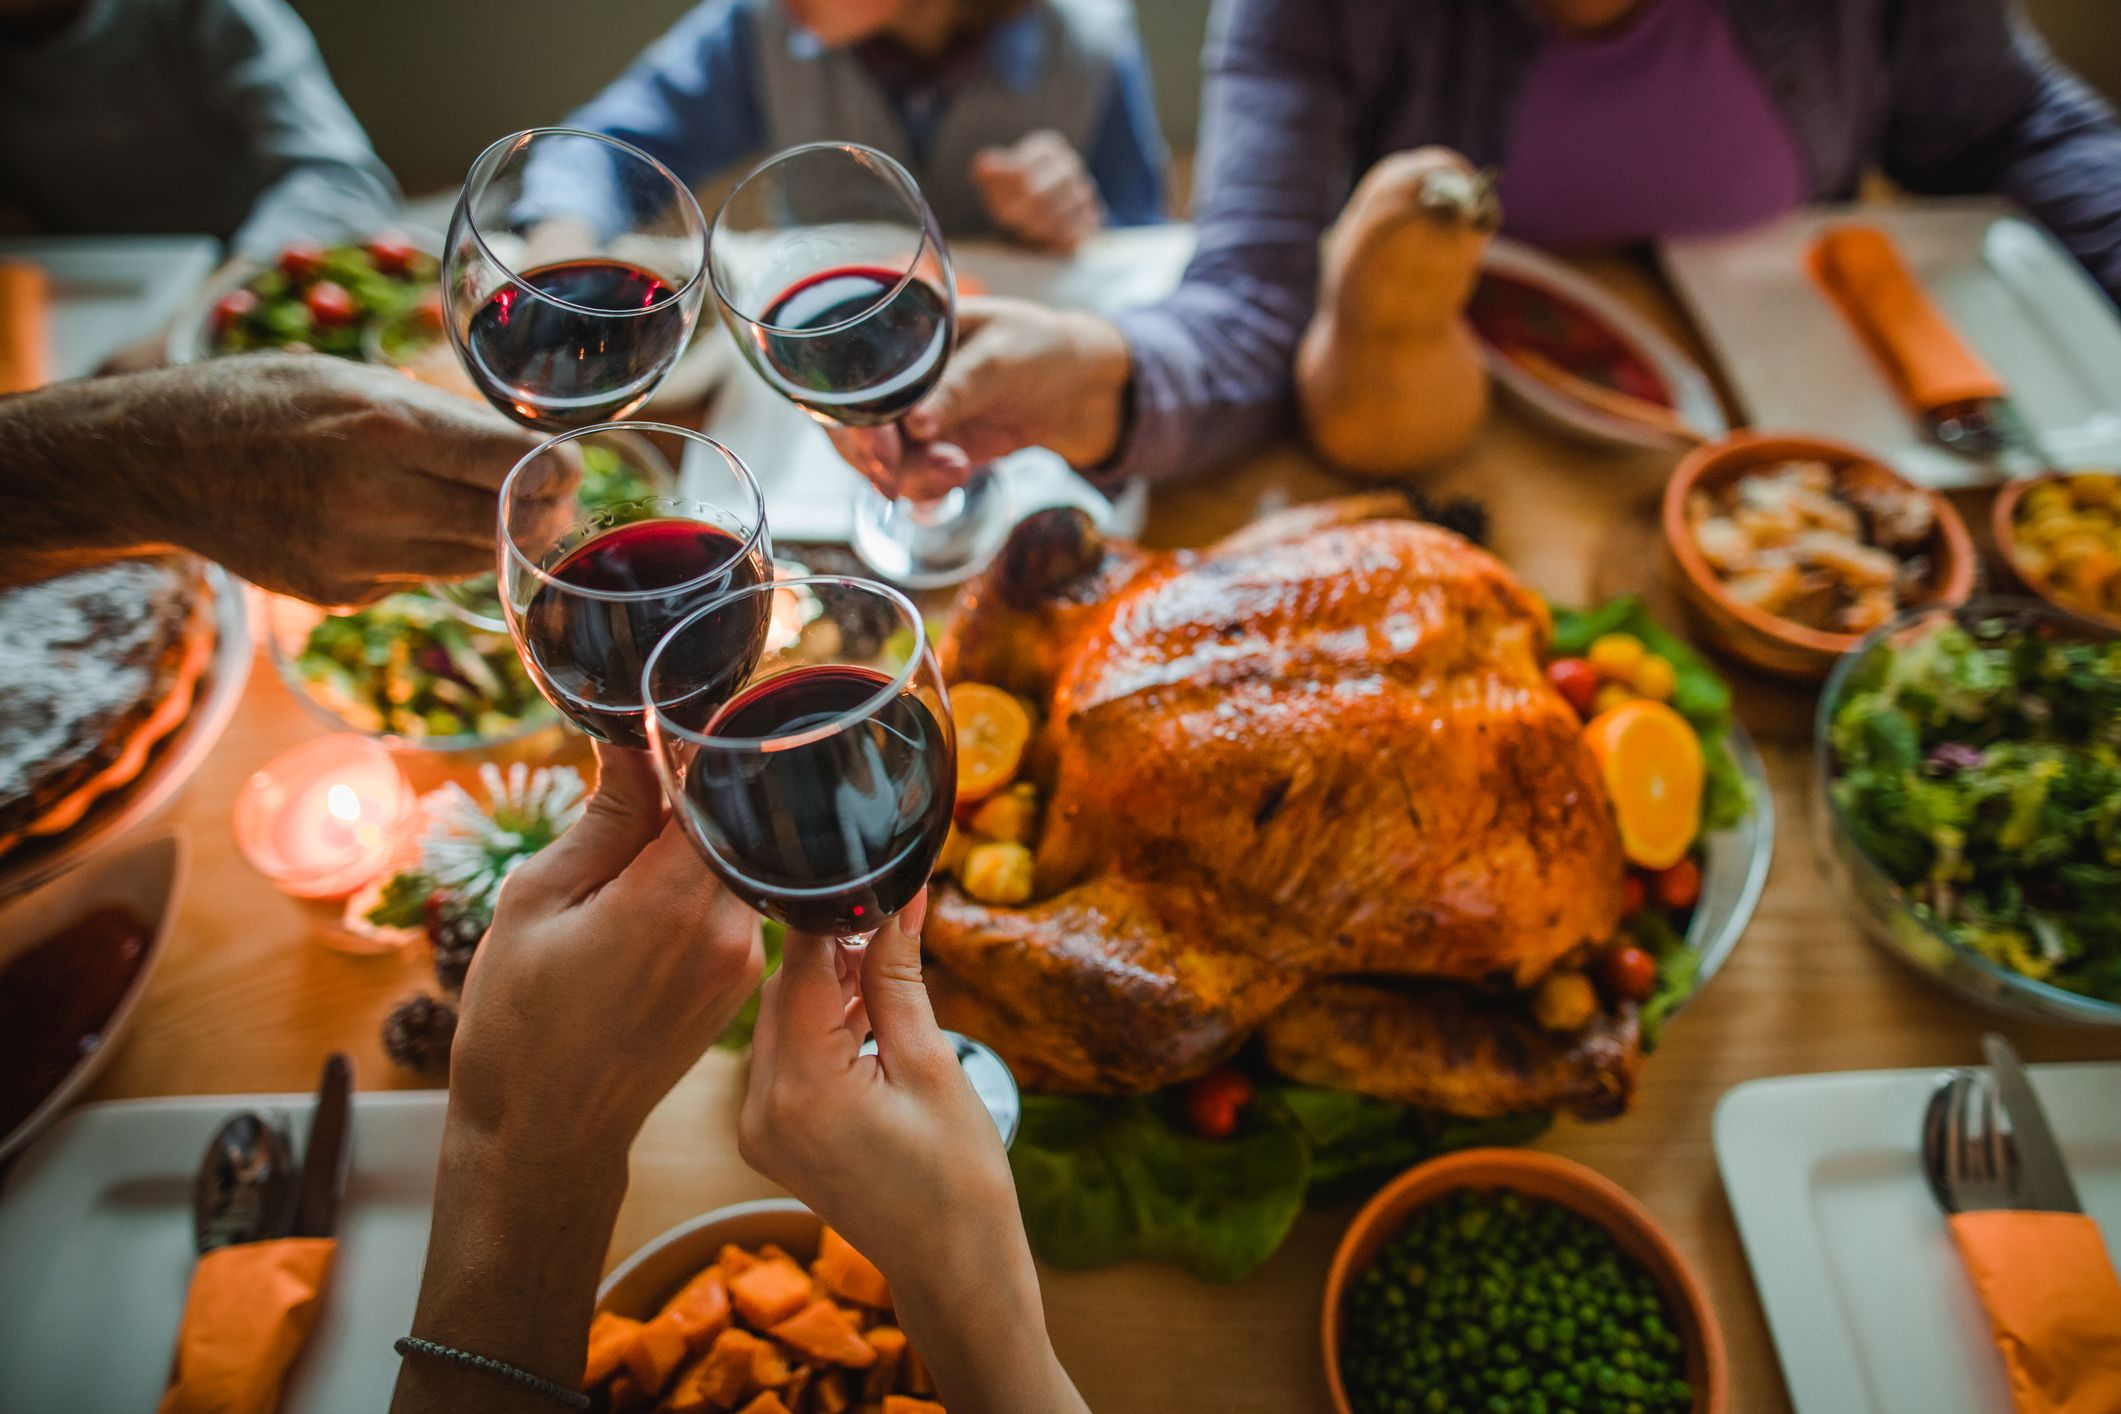 These are the wines to pair with your Christmas meal this year, according to an expert